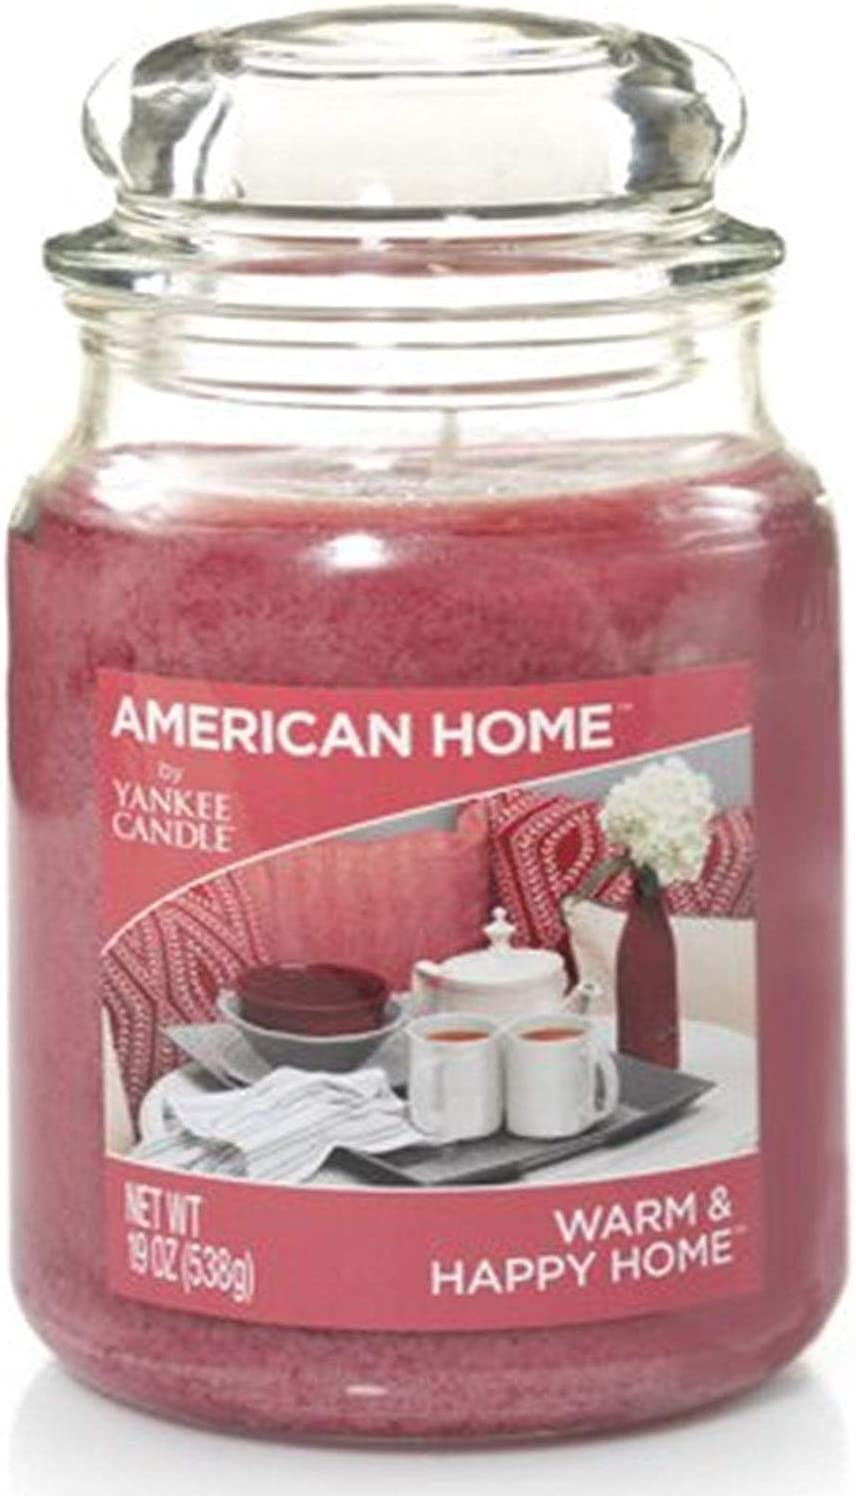 Yankee Candle 241483 Scented Fragrance Candles American Collection Luxury Classic Large 19oz Glass Jar 538g[Warm & Happy Home], Youth 11-13, Purple